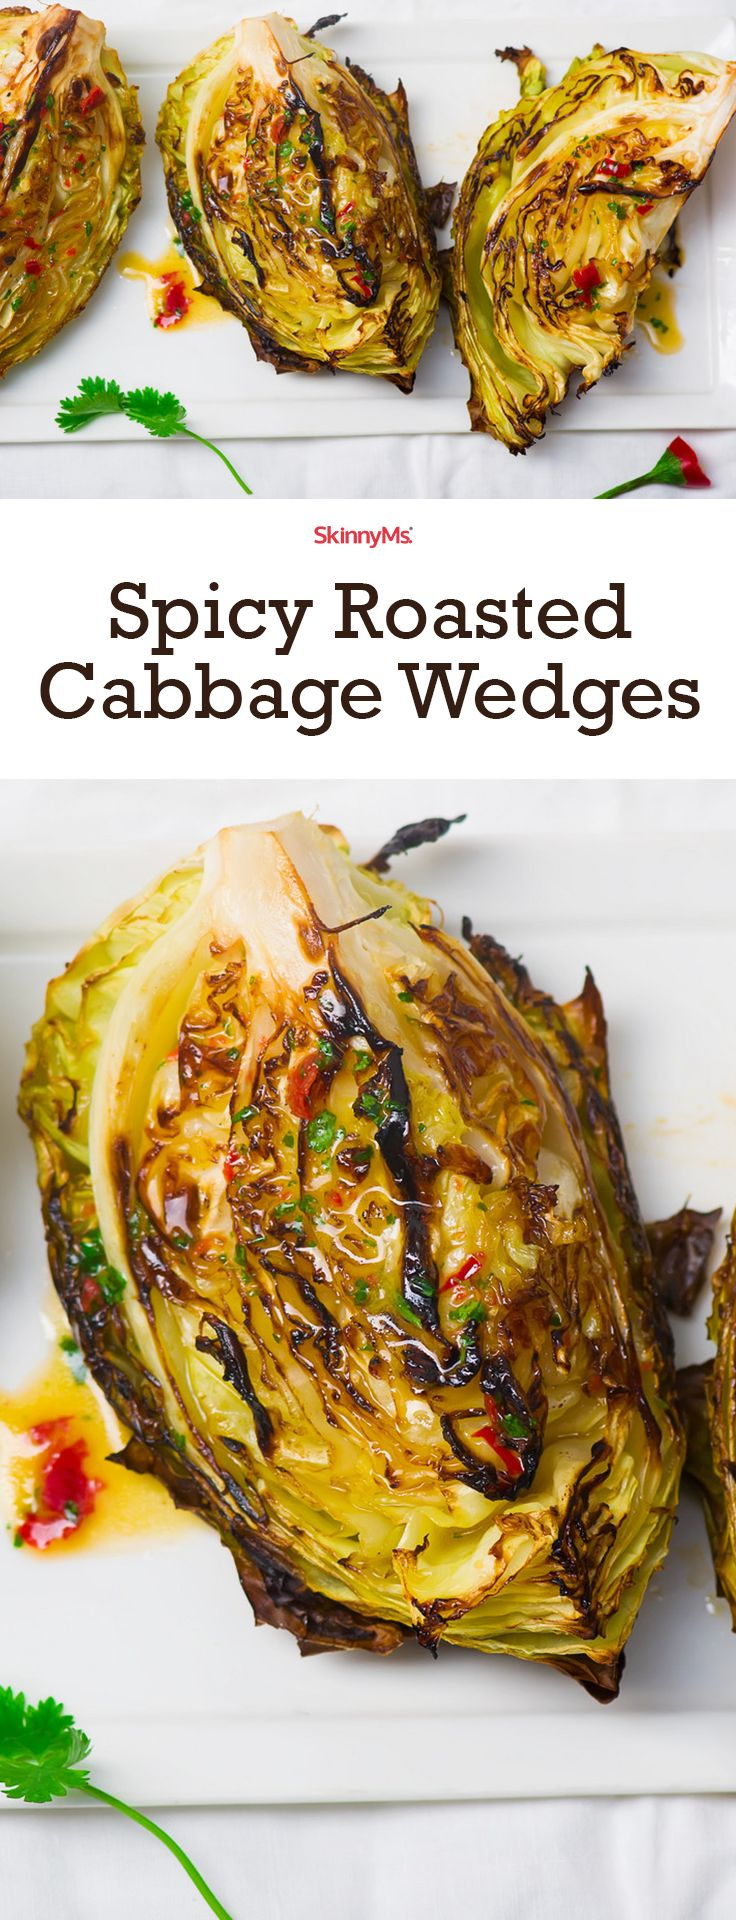 Spicy Roasted Cabbage Wedges  - we've discovered a mouthwatering cabbage-prep method that'll blow your taste buds away – roasting!